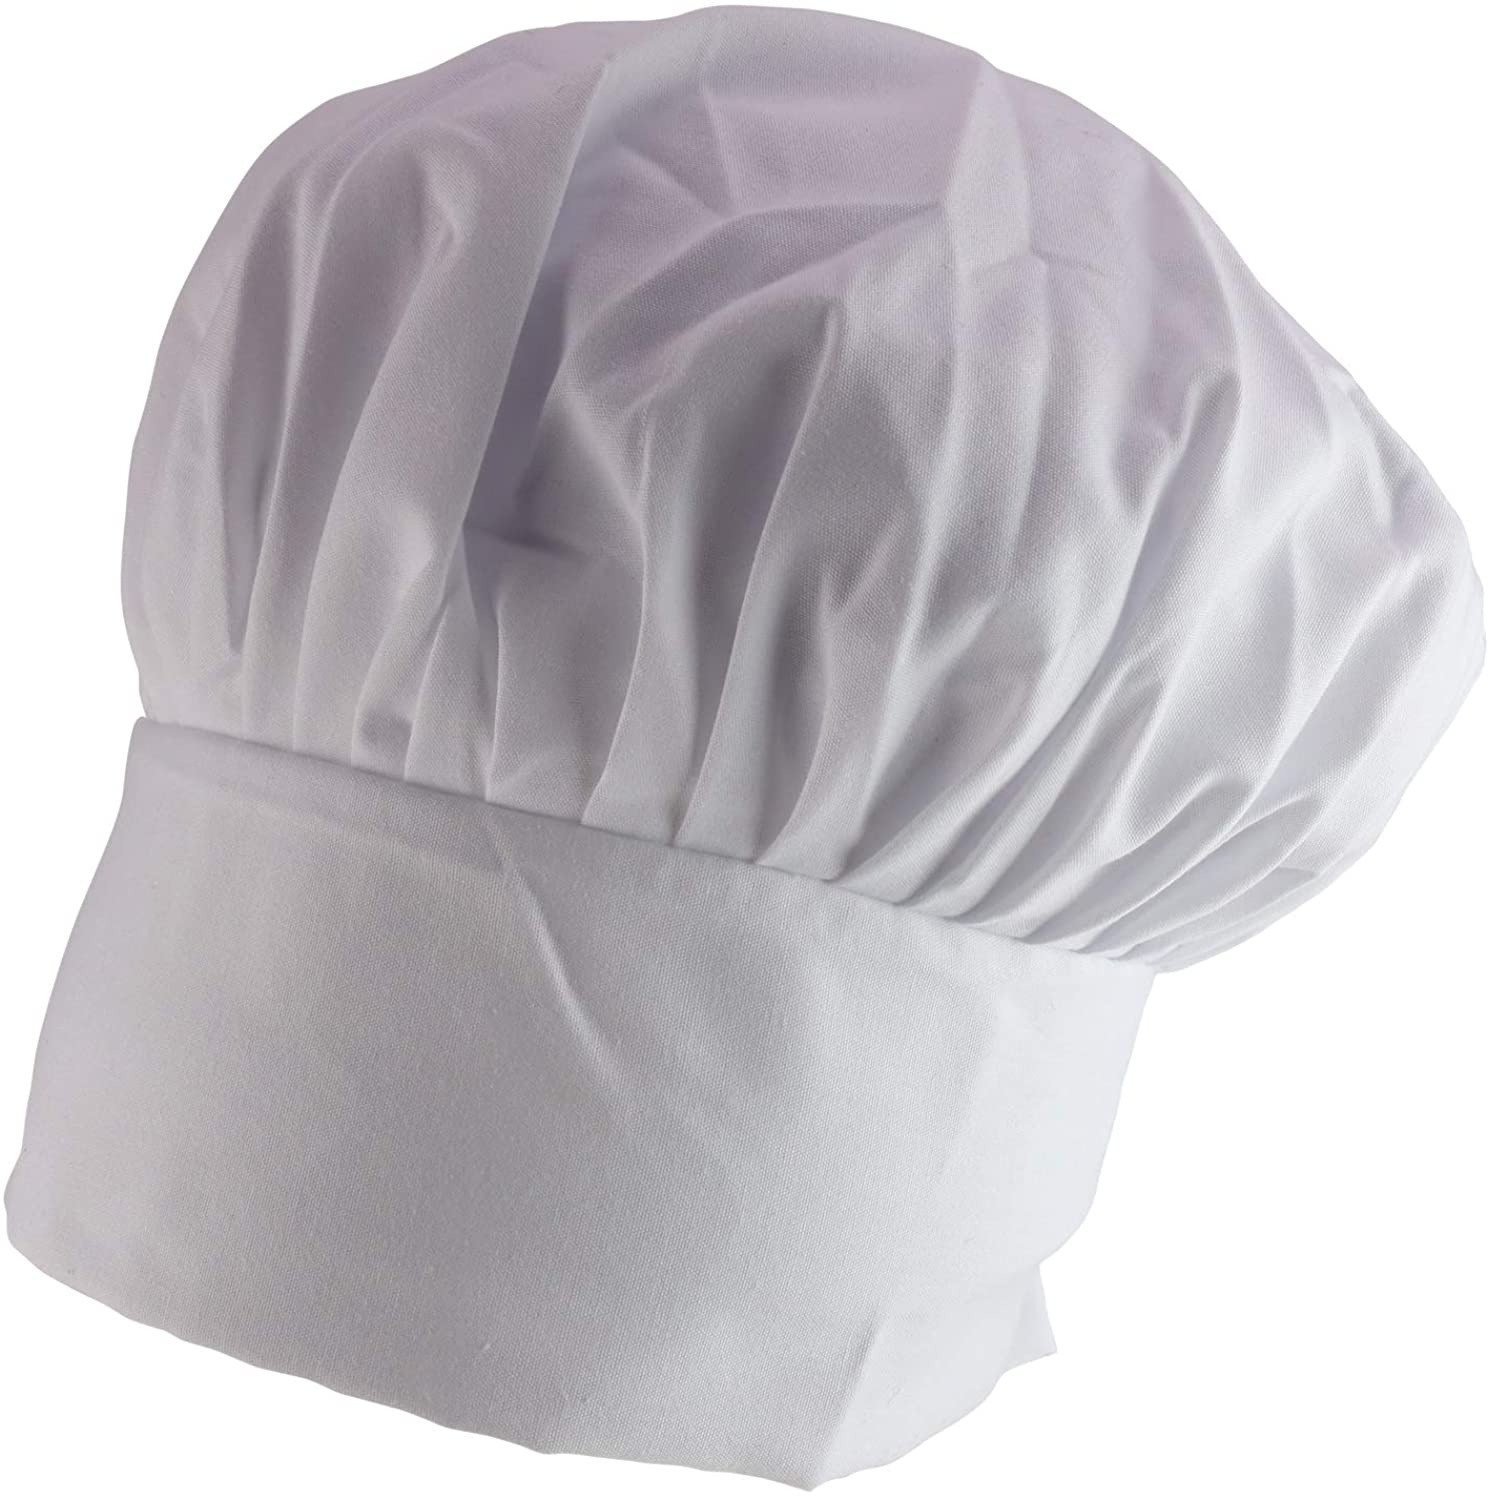 Trendy Apparel Shop Stretchable Elastic Cooking Chef Hat